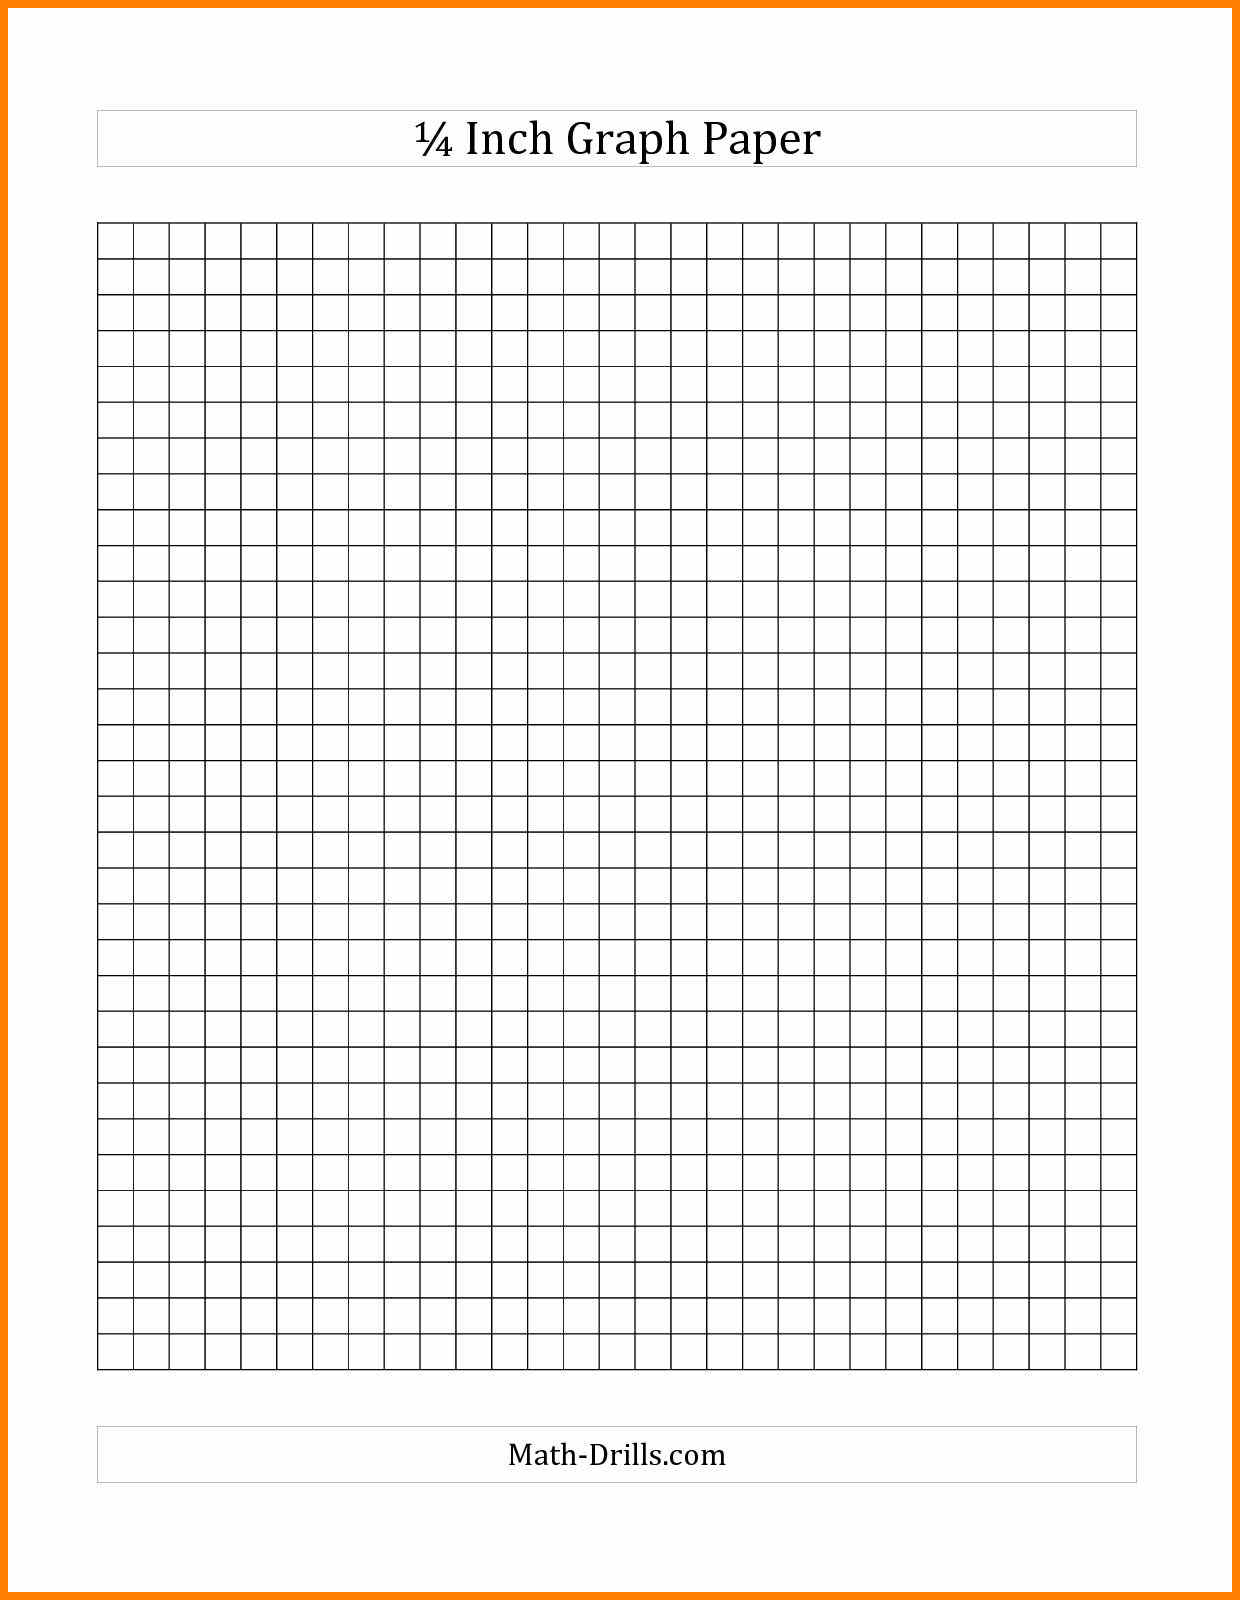 6 1 4 Graph Paper Best Solutions Of Math Grid Paper Template - Tim - Free Printable Graph Paper 1 4 Inch